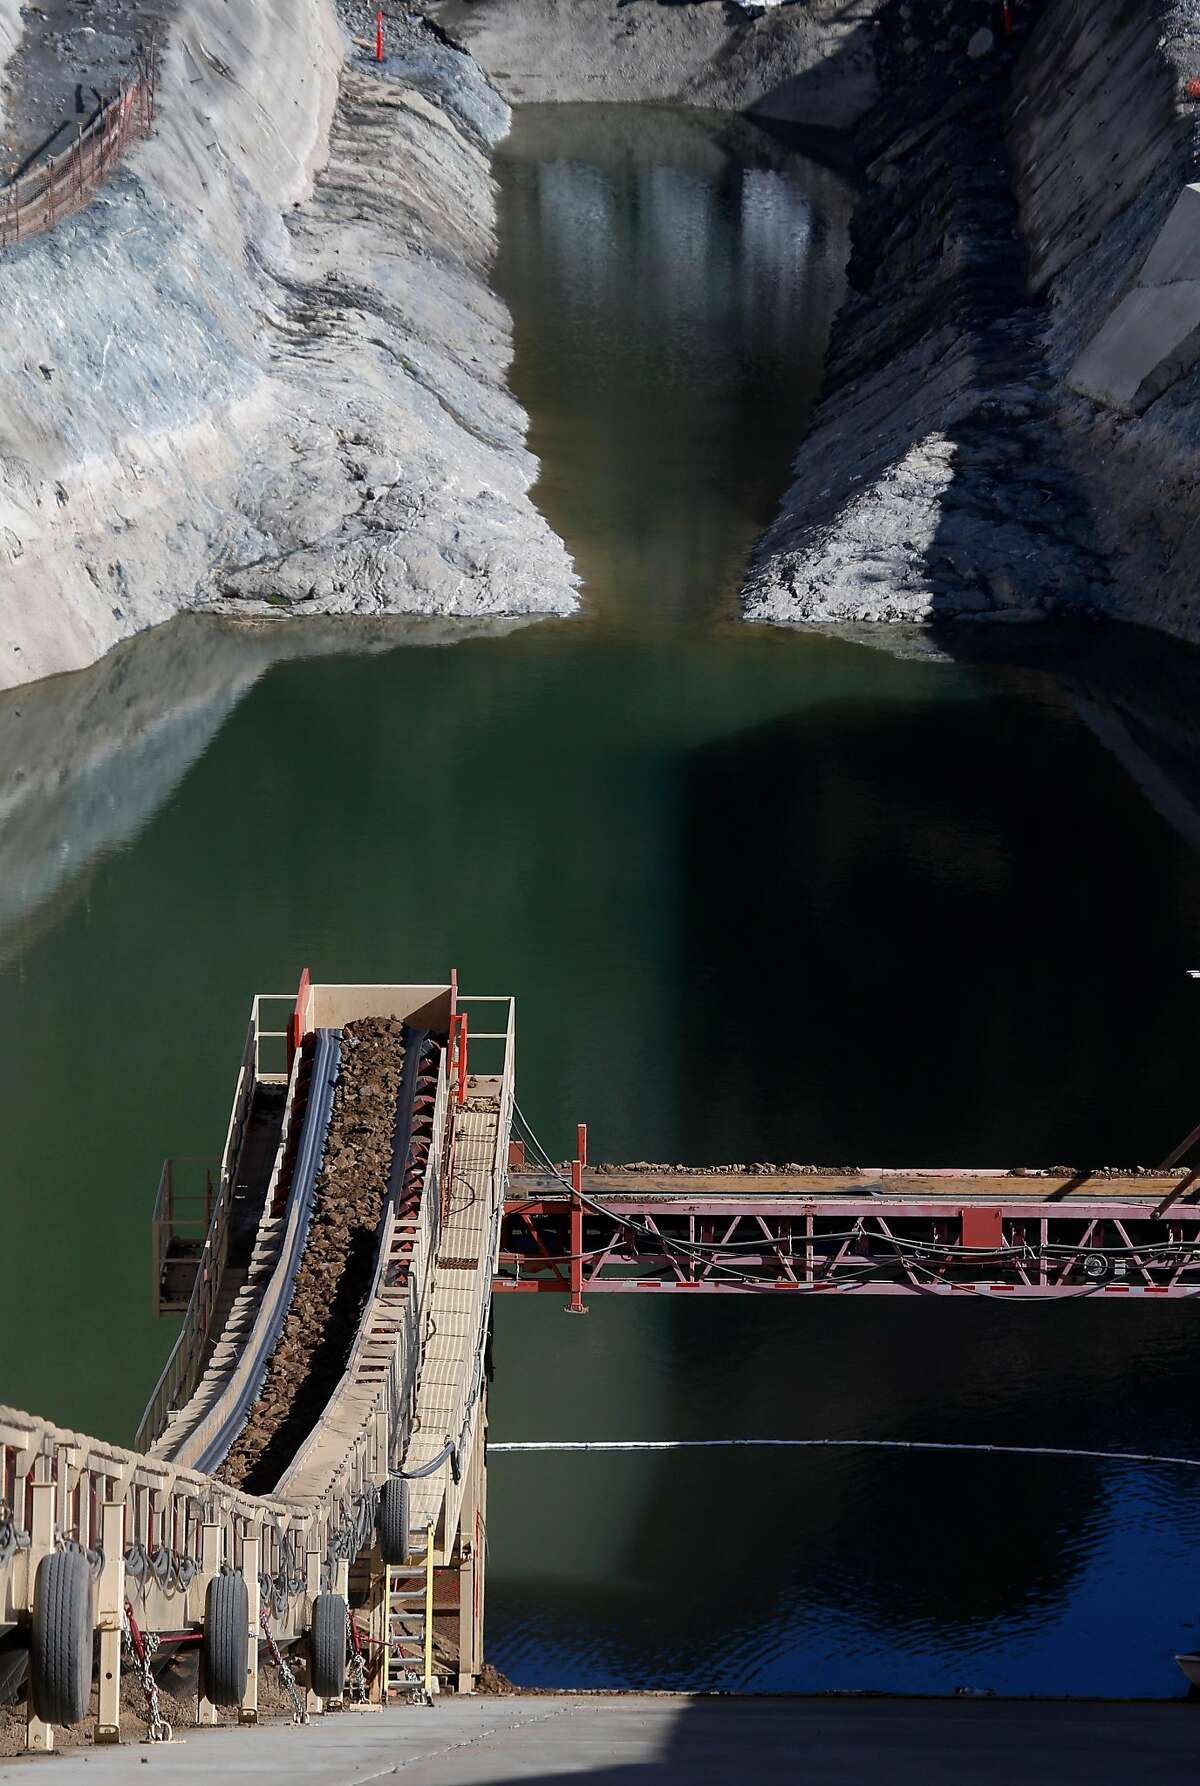 An elaborate conveyor system transports dirt and other material 3,000 feet to the base of the Calaveras Dam replacement project near Sunol, Calif. on Tuesday, Nov. 14, 2017. The SFPUC is replacing the original seismically unreliable dam, which was completed in 1925, with a 220-foot high rock and earthen dam.